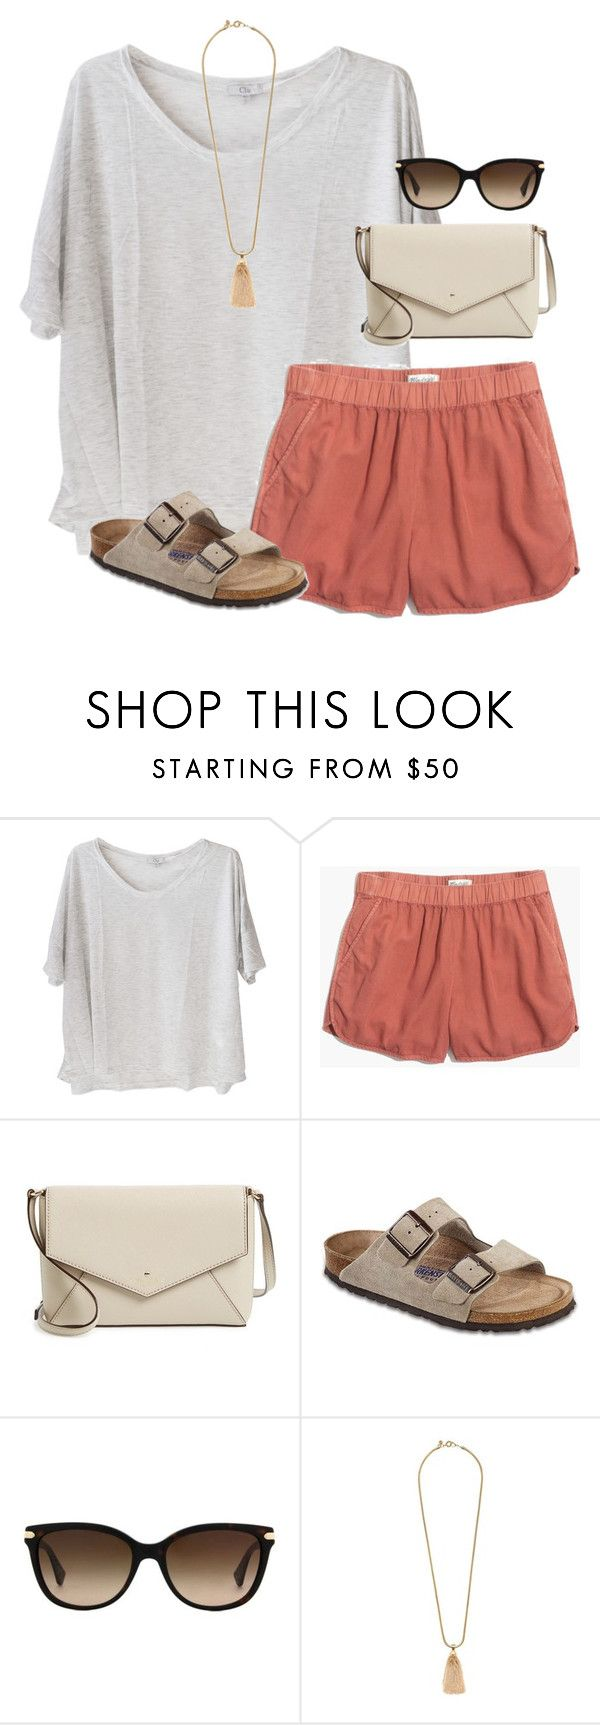 """""""mismatch"""" by tessorastefan ❤ liked on Polyvore featuring Clu, Madewell, Kate Spade, Birkenstock, Coach and J.Crew"""